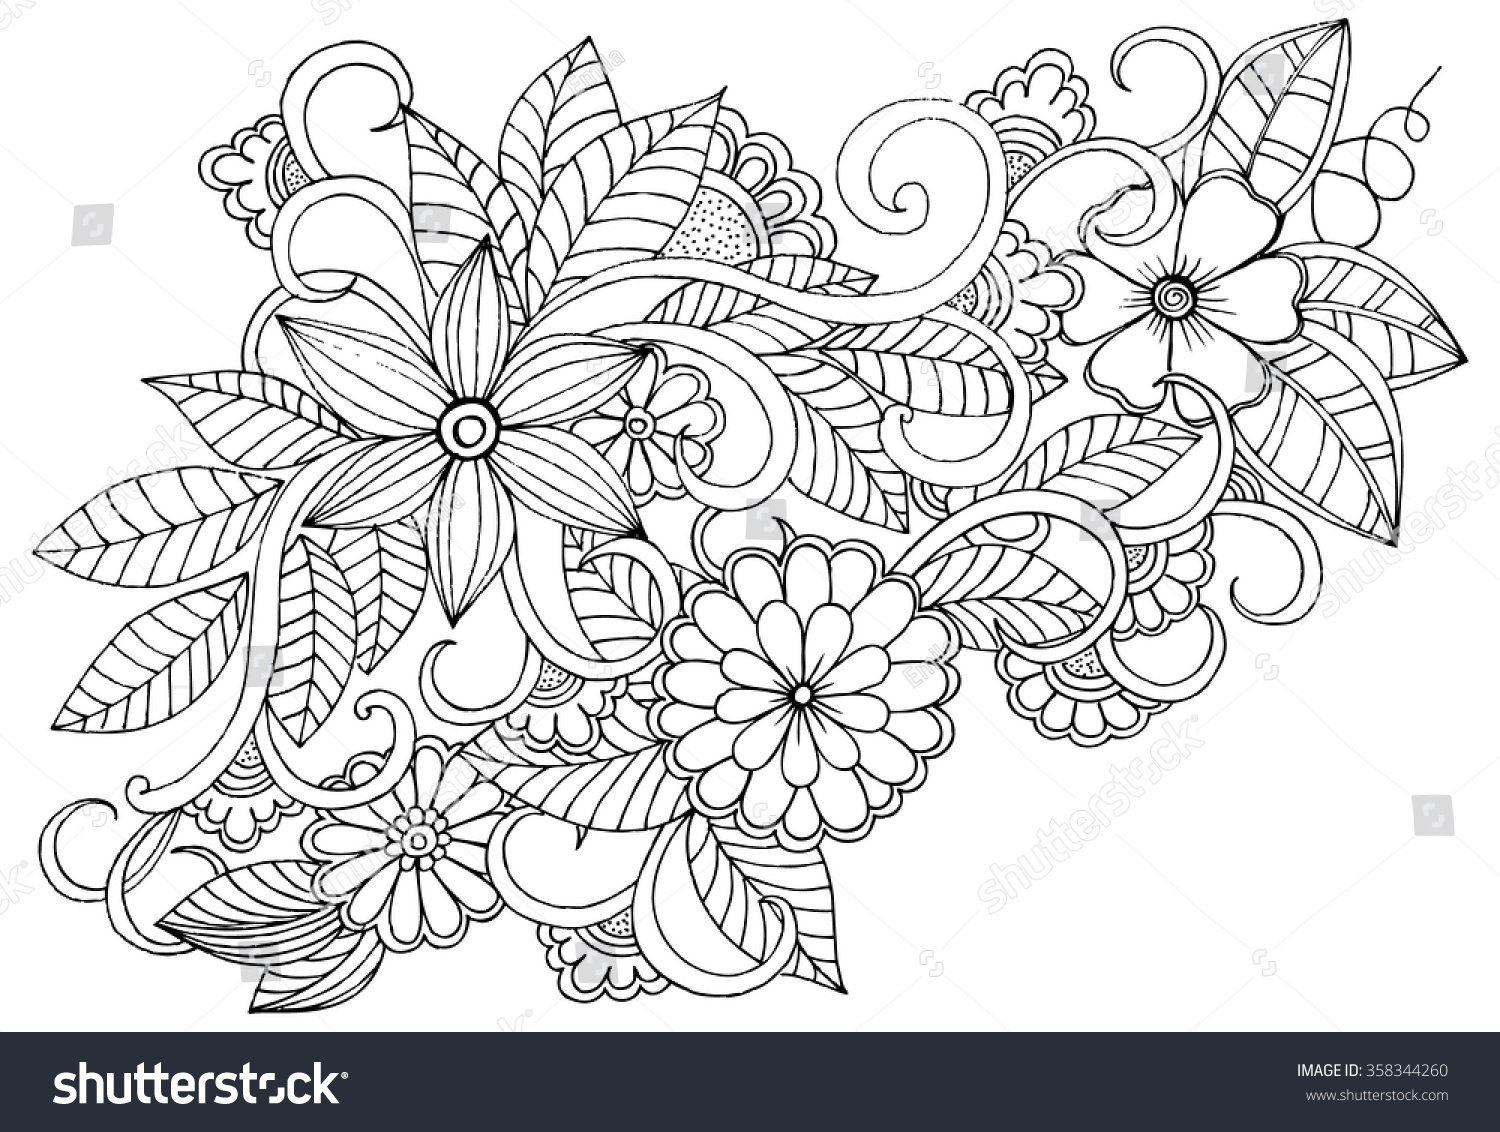 flowers coloring pages coloring pages as well 4d3b89e535c72123761f7e2b7435c010 as well  further flower coloring sheet for adults   pagespeed ce KnyXQAG6Ib besides  moreover pondriverlake 20 9 likewise  additionally  moreover coloring pages birds and flowers love perching on tree batch in addition  as well . on spring flower mandala coloring pages for adults